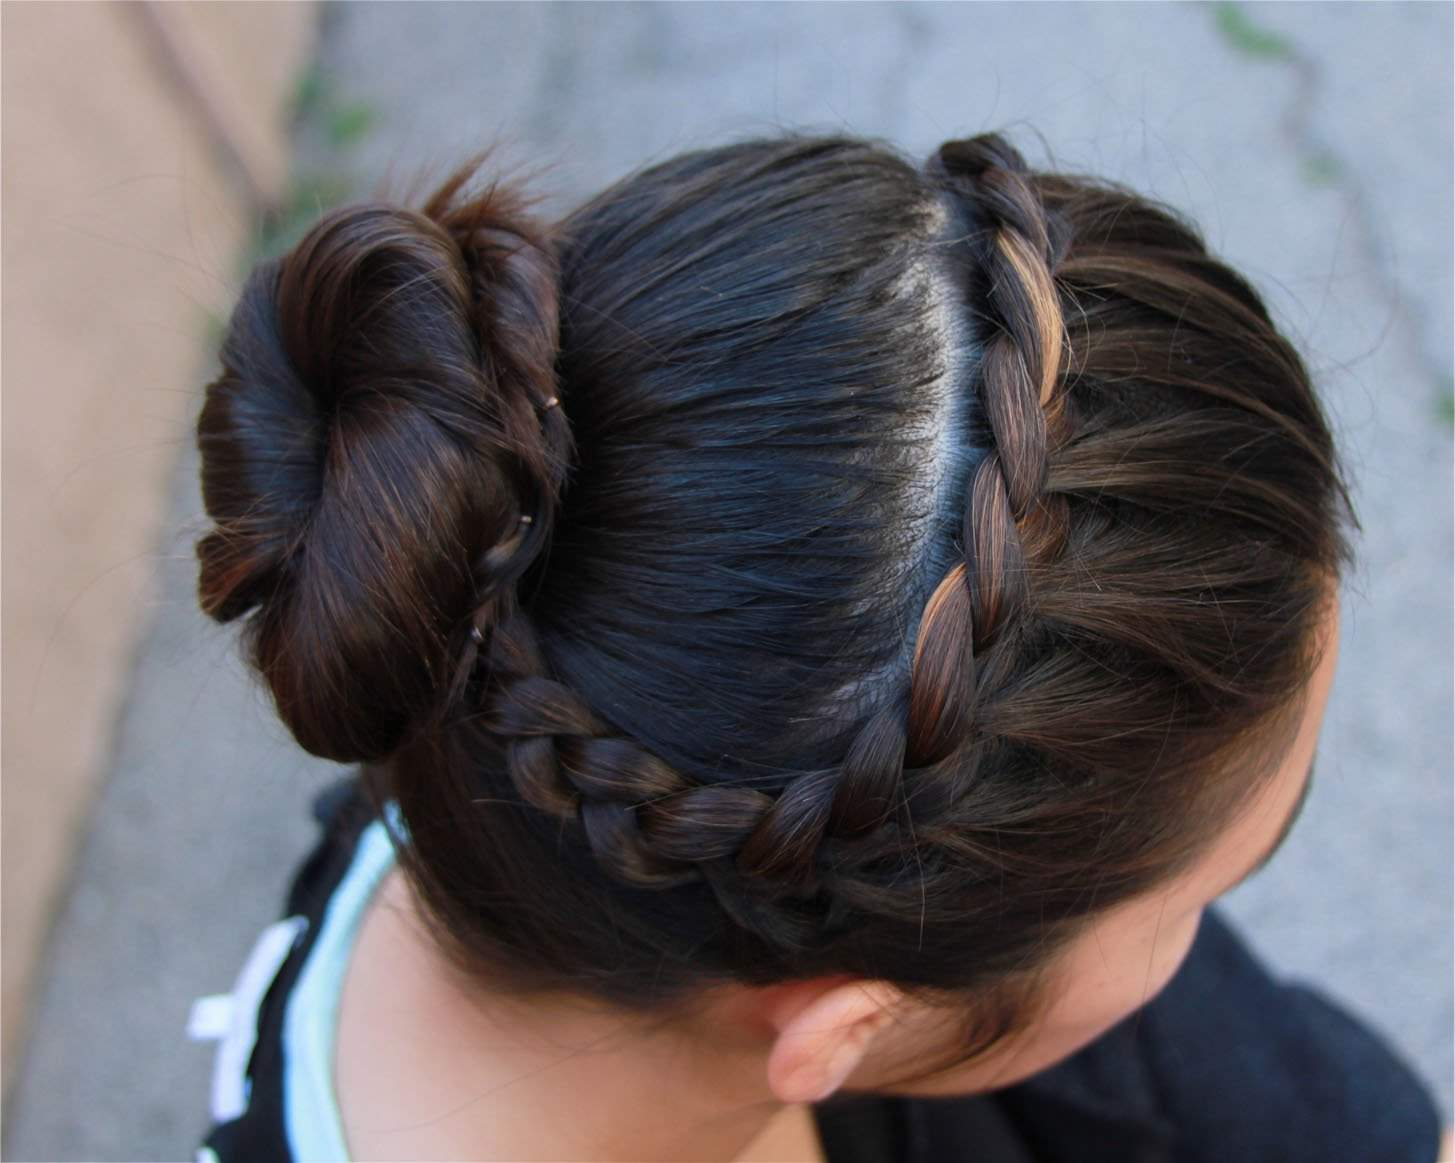 Easy Buns And Braided Hairstyles